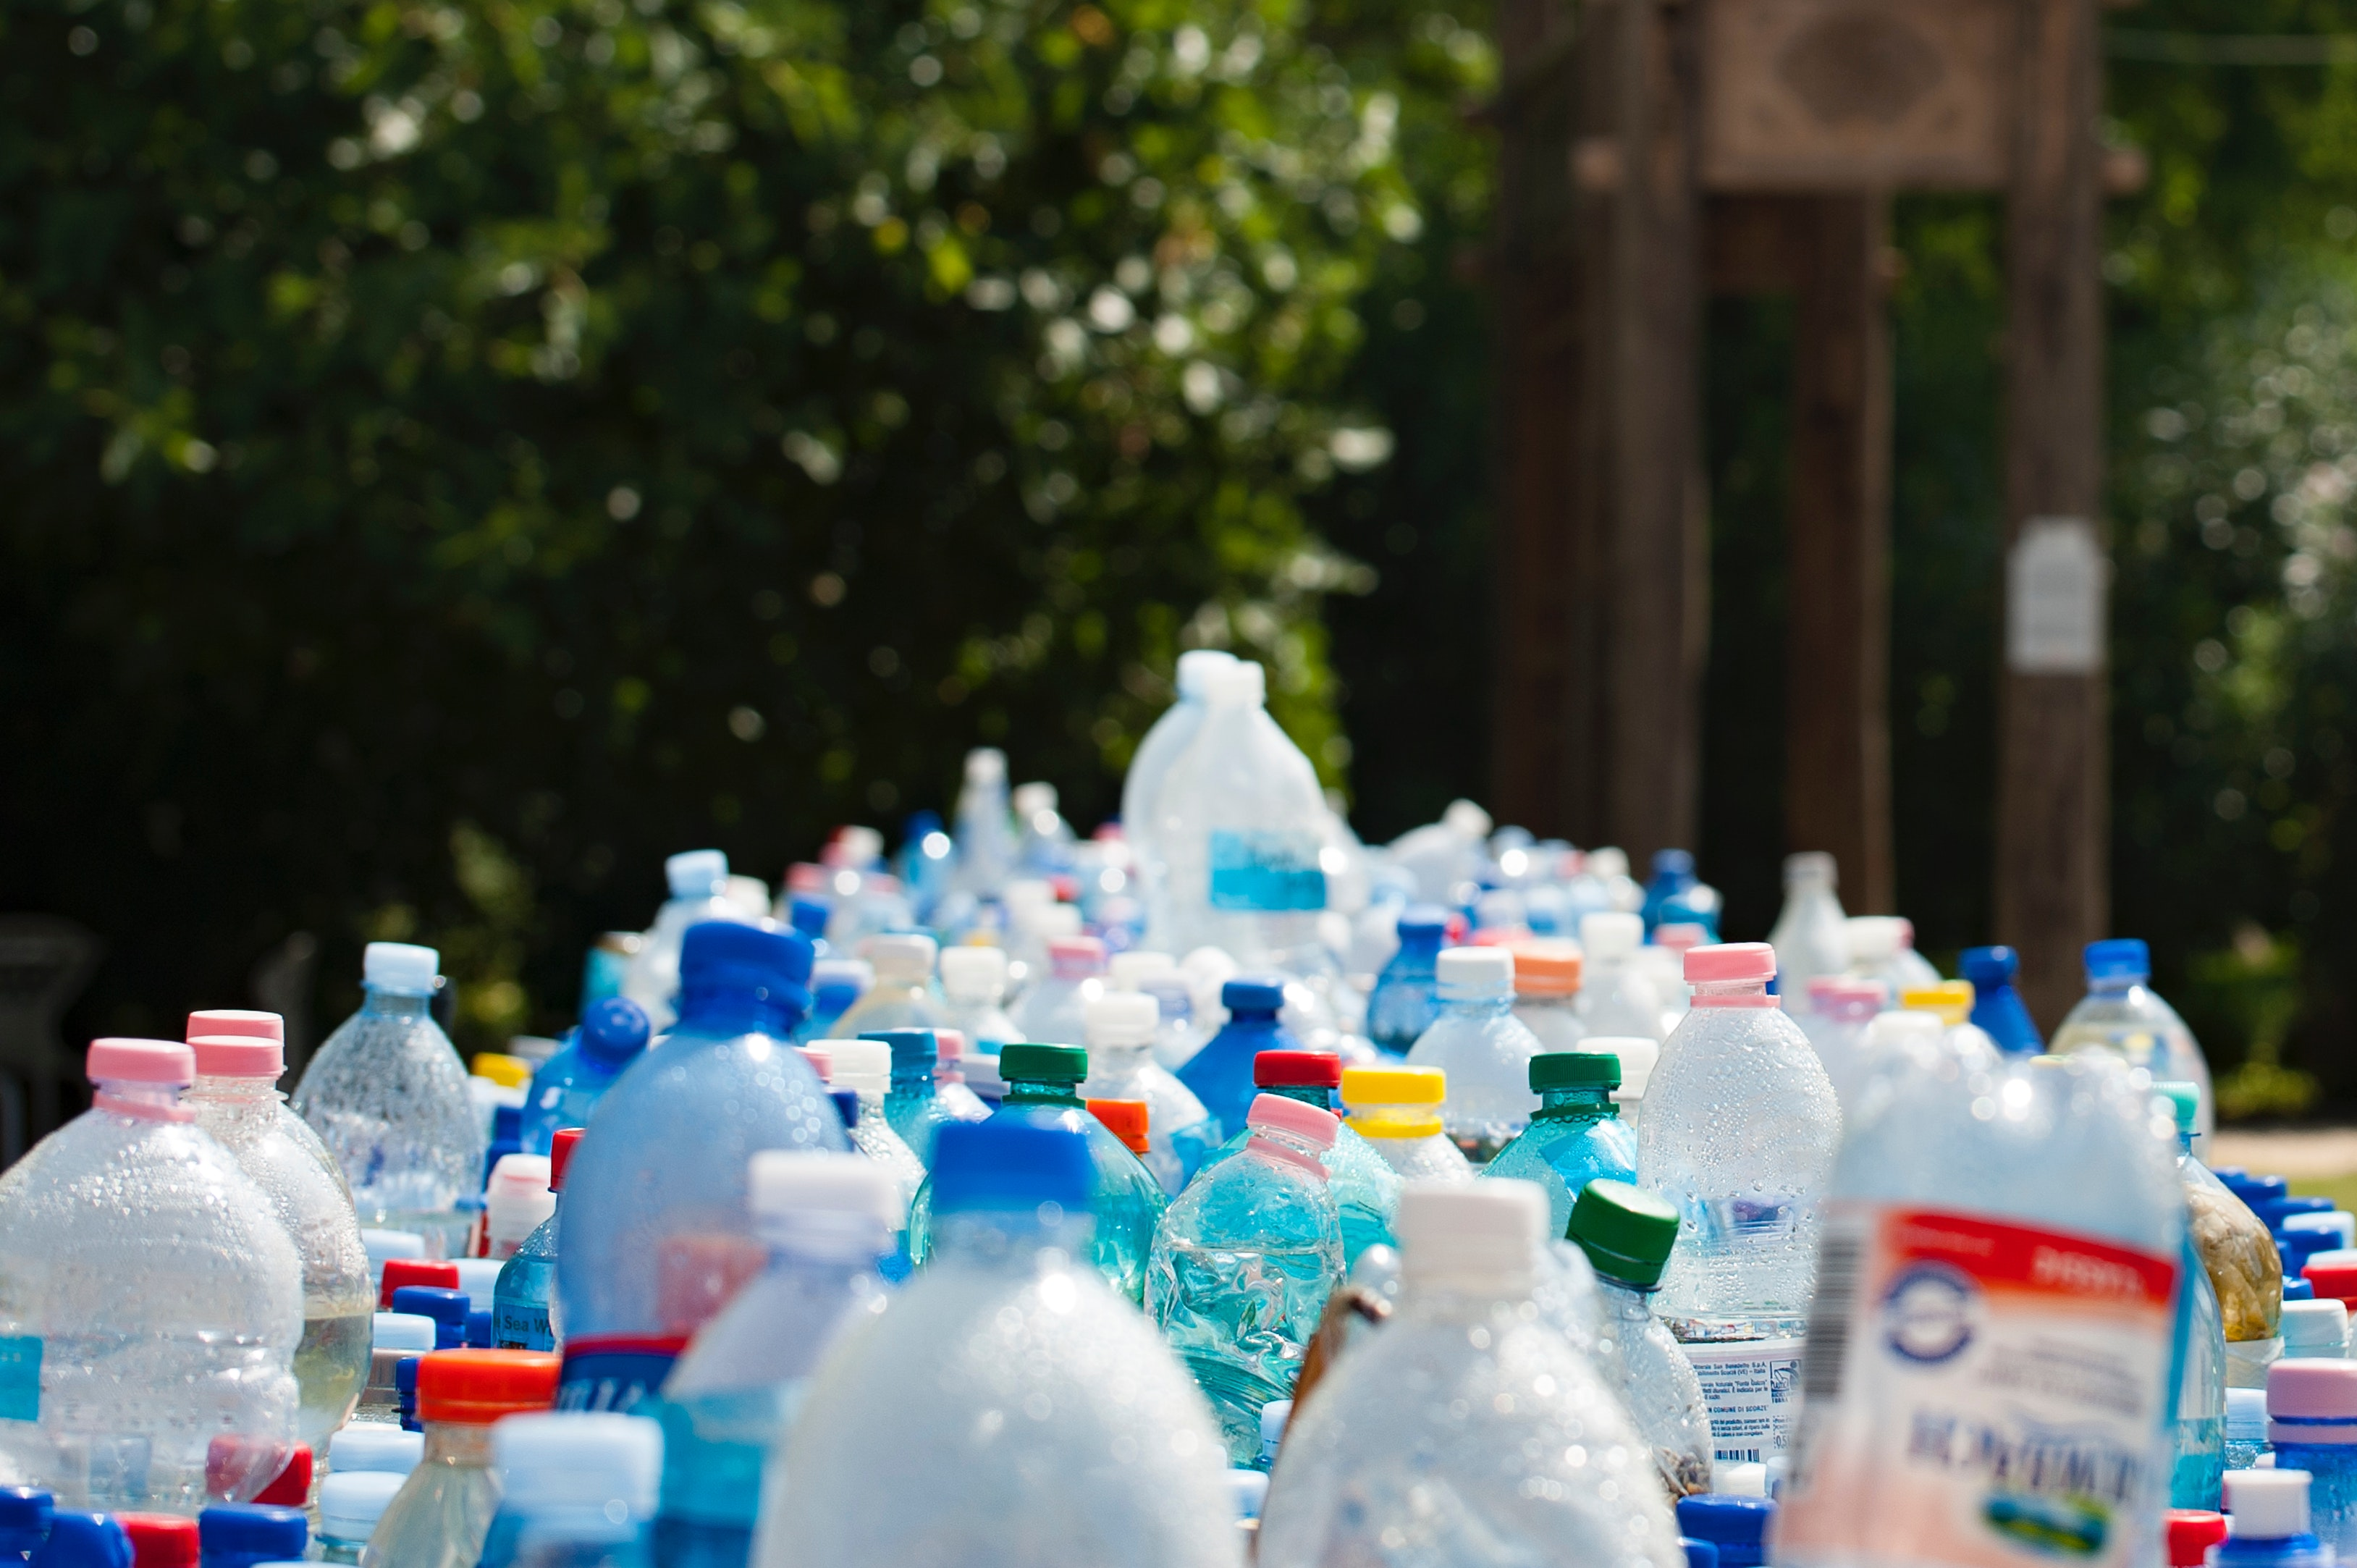 Even a feel-good cause needs a market: 2 major competitive strategy lessons to be learned from the recycling business